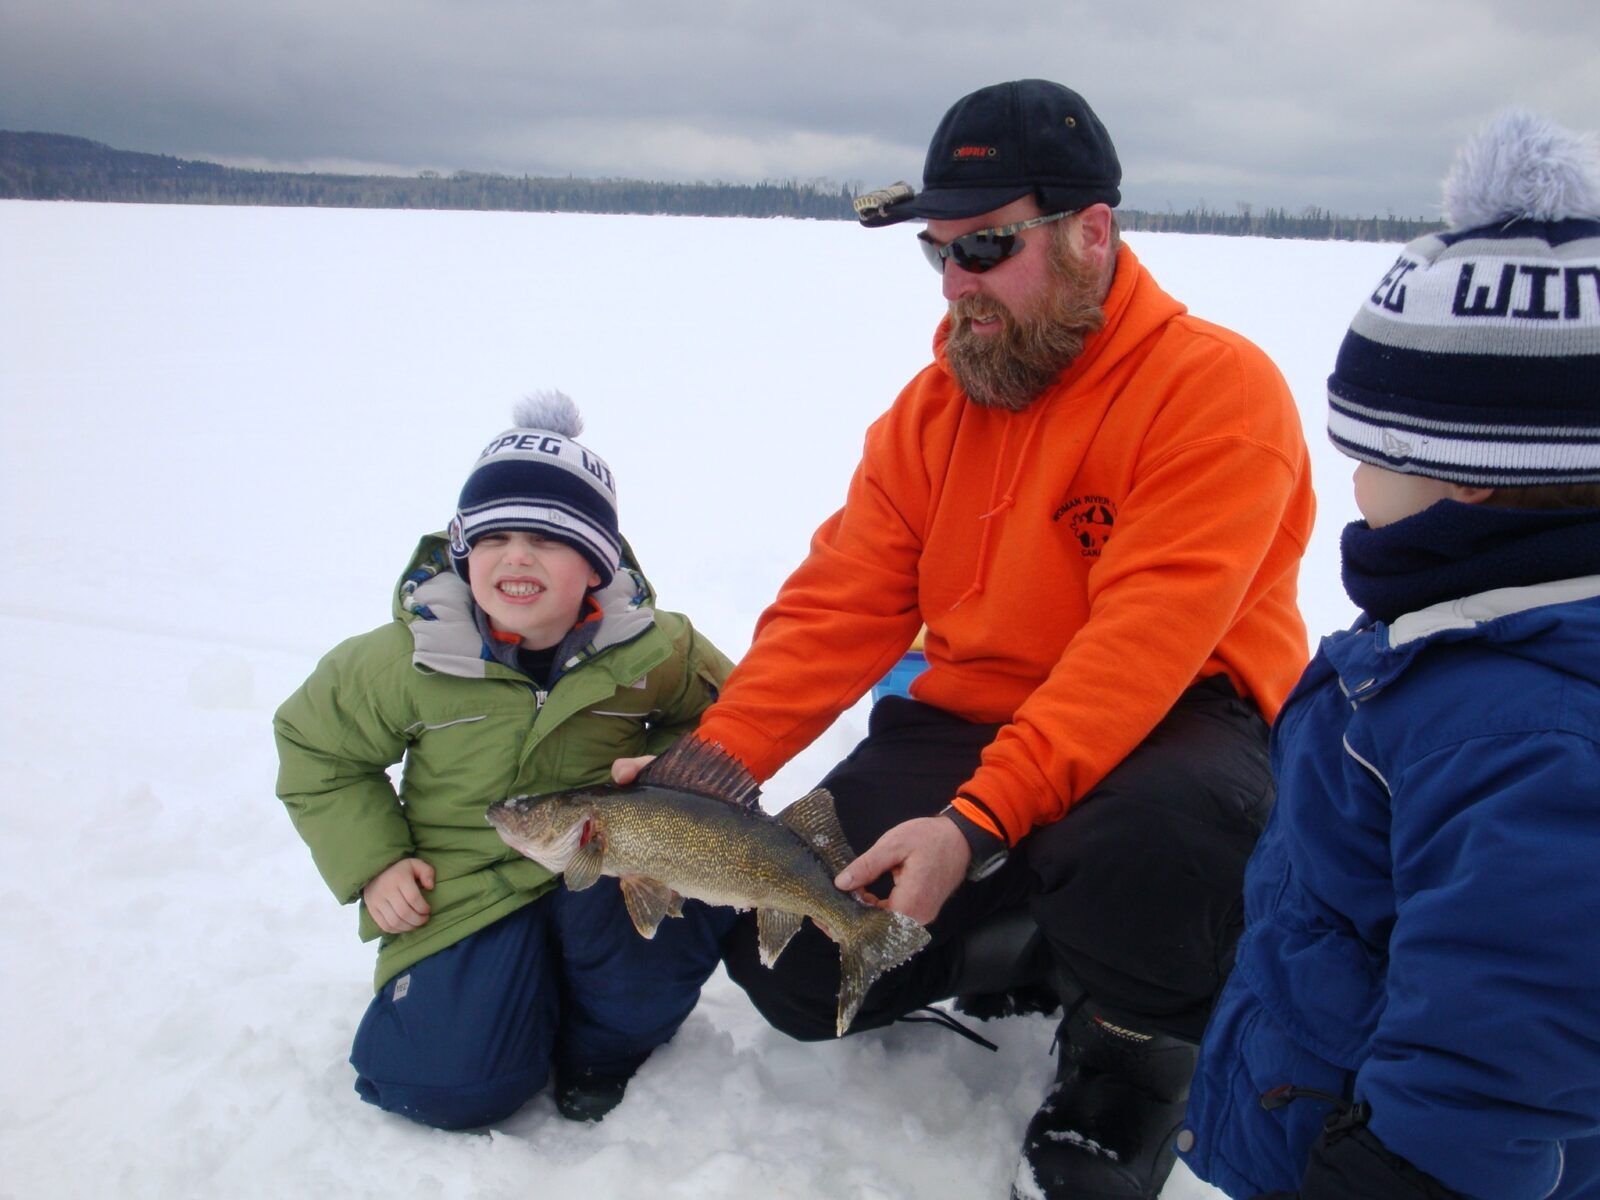 St paul ice fishing sport show woman river camp for Ice fishing show